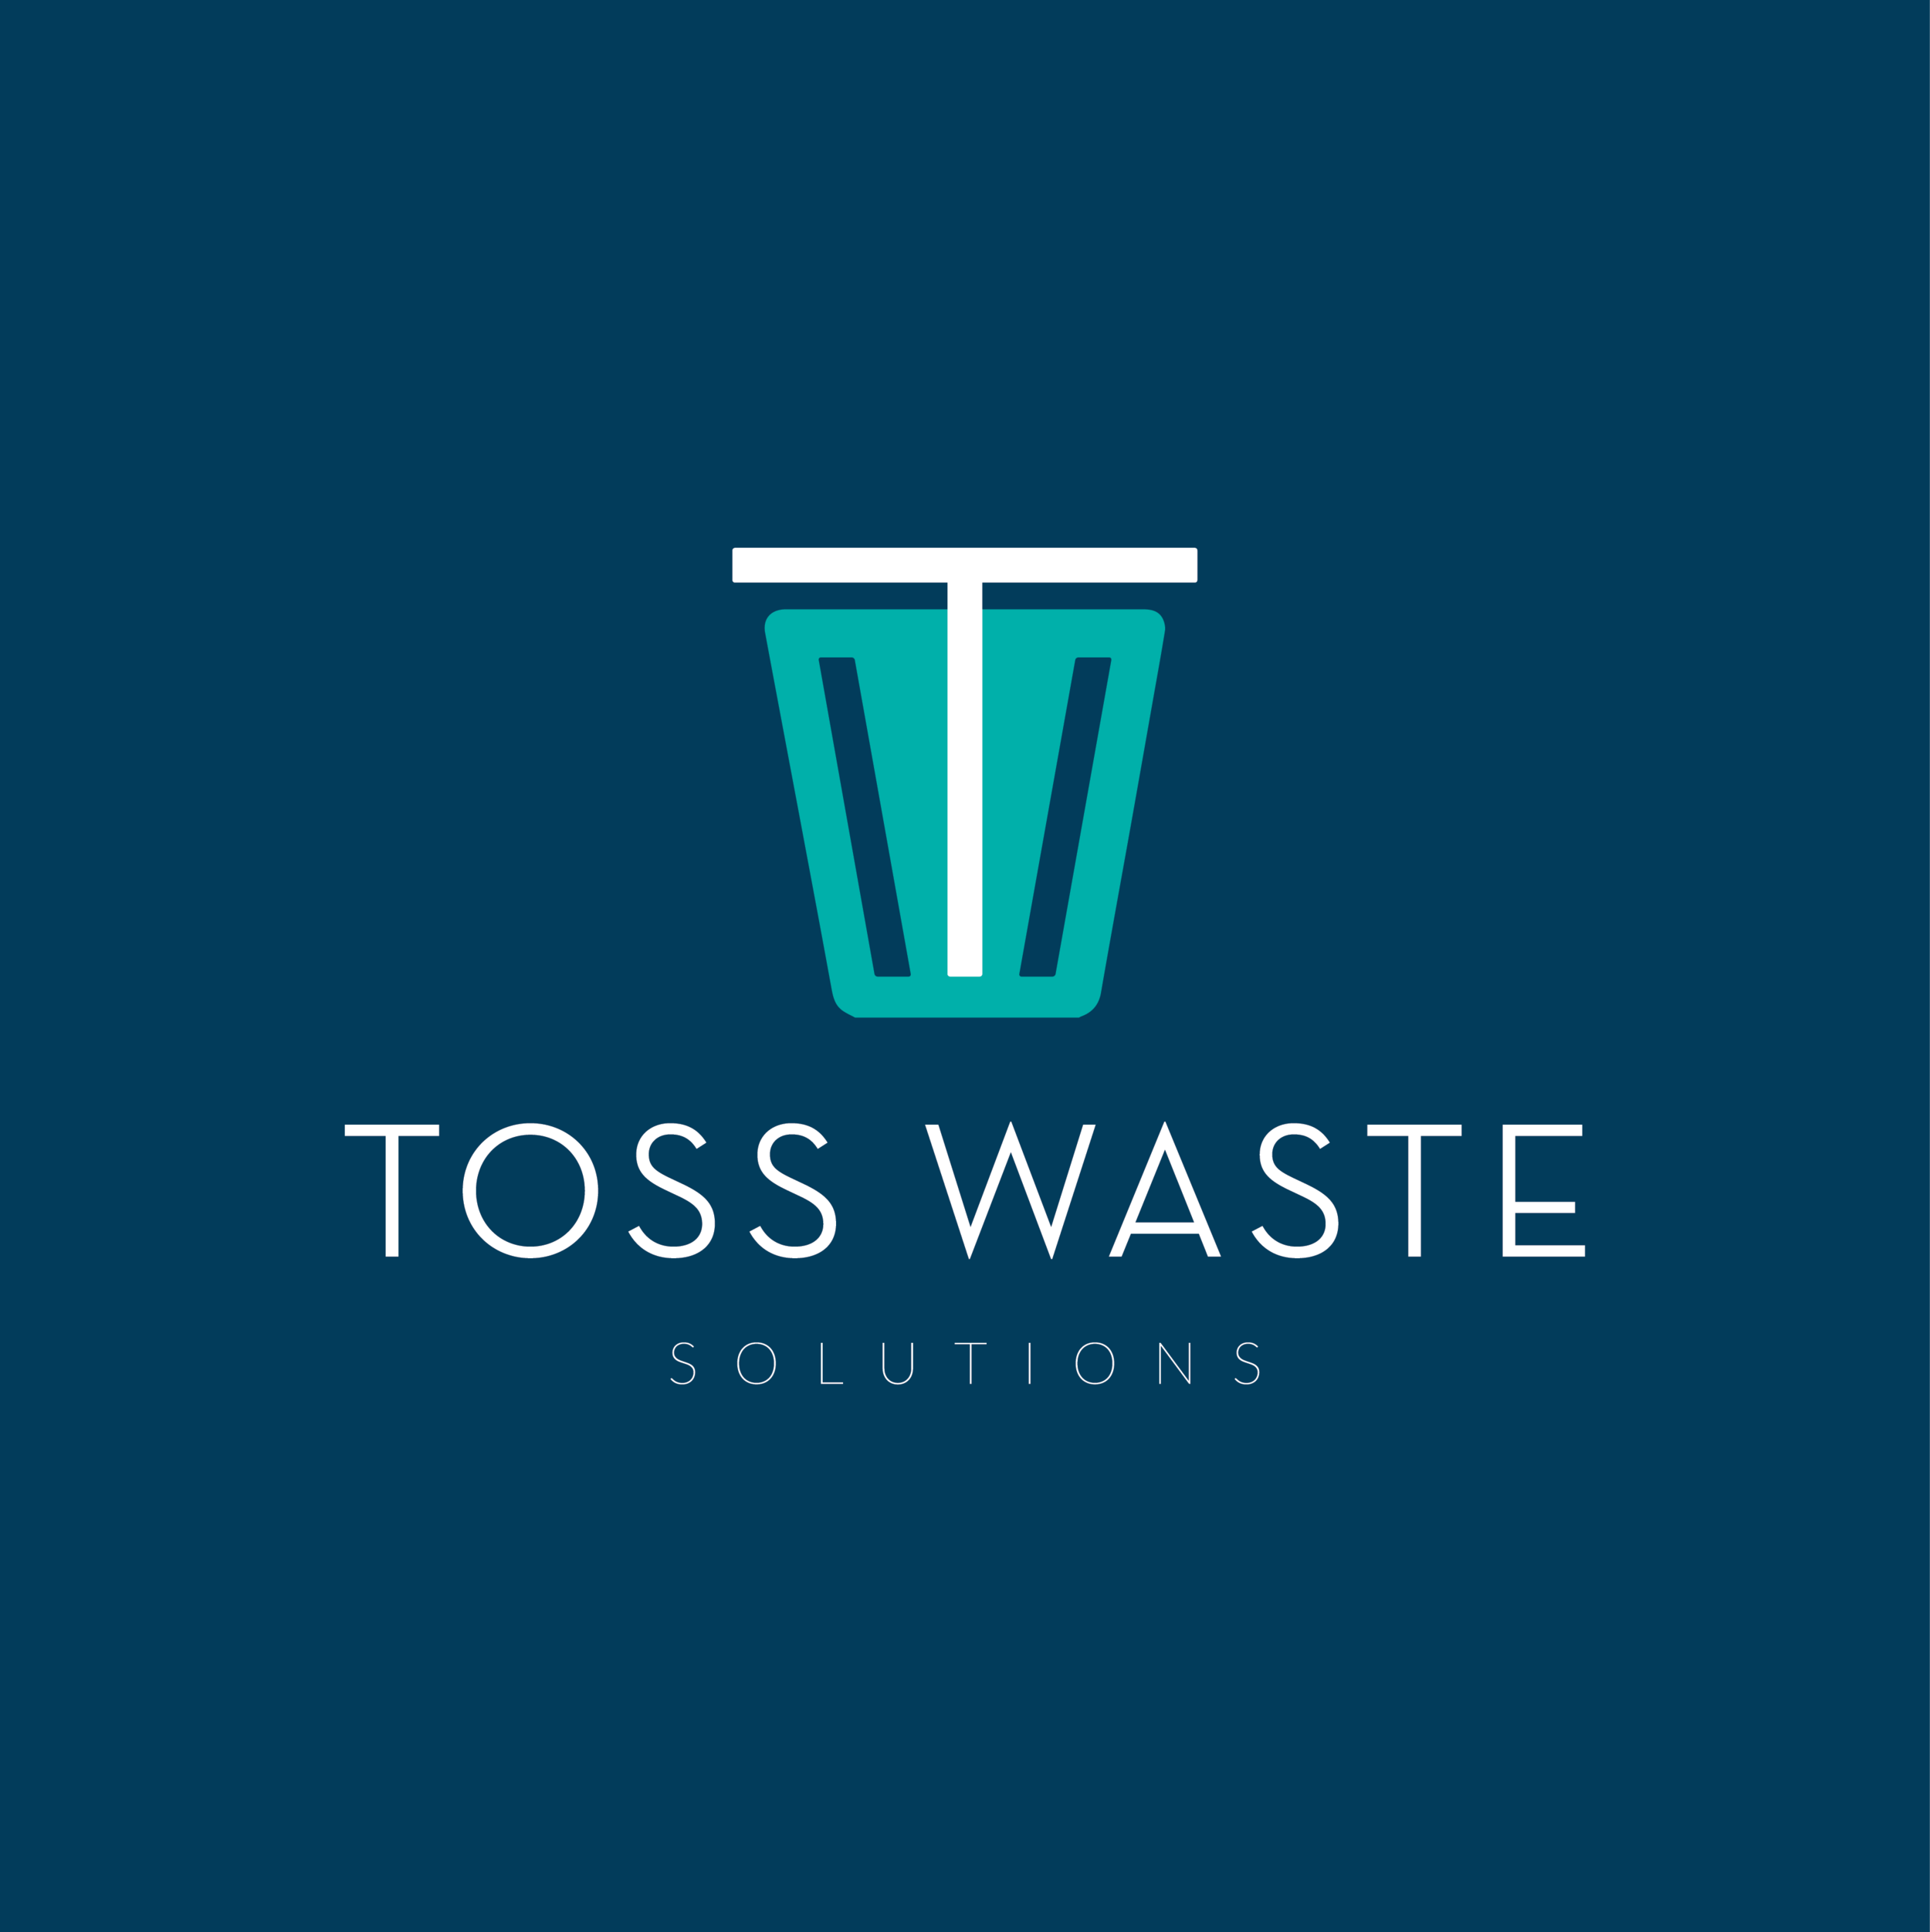 "I recently finished the branding for Toss Waste Solutions, which is a Doorstep Waste and Recycling Service based out of Raleigh, North Carolina. The TOSS RESIDENT REWARDS PROGRAM engages your community to become part of the ""Green Doorstep Initiative."" With community and recycling at the focus, we wanted the brand to reflect that mission. After all, trash can be beautiful too."